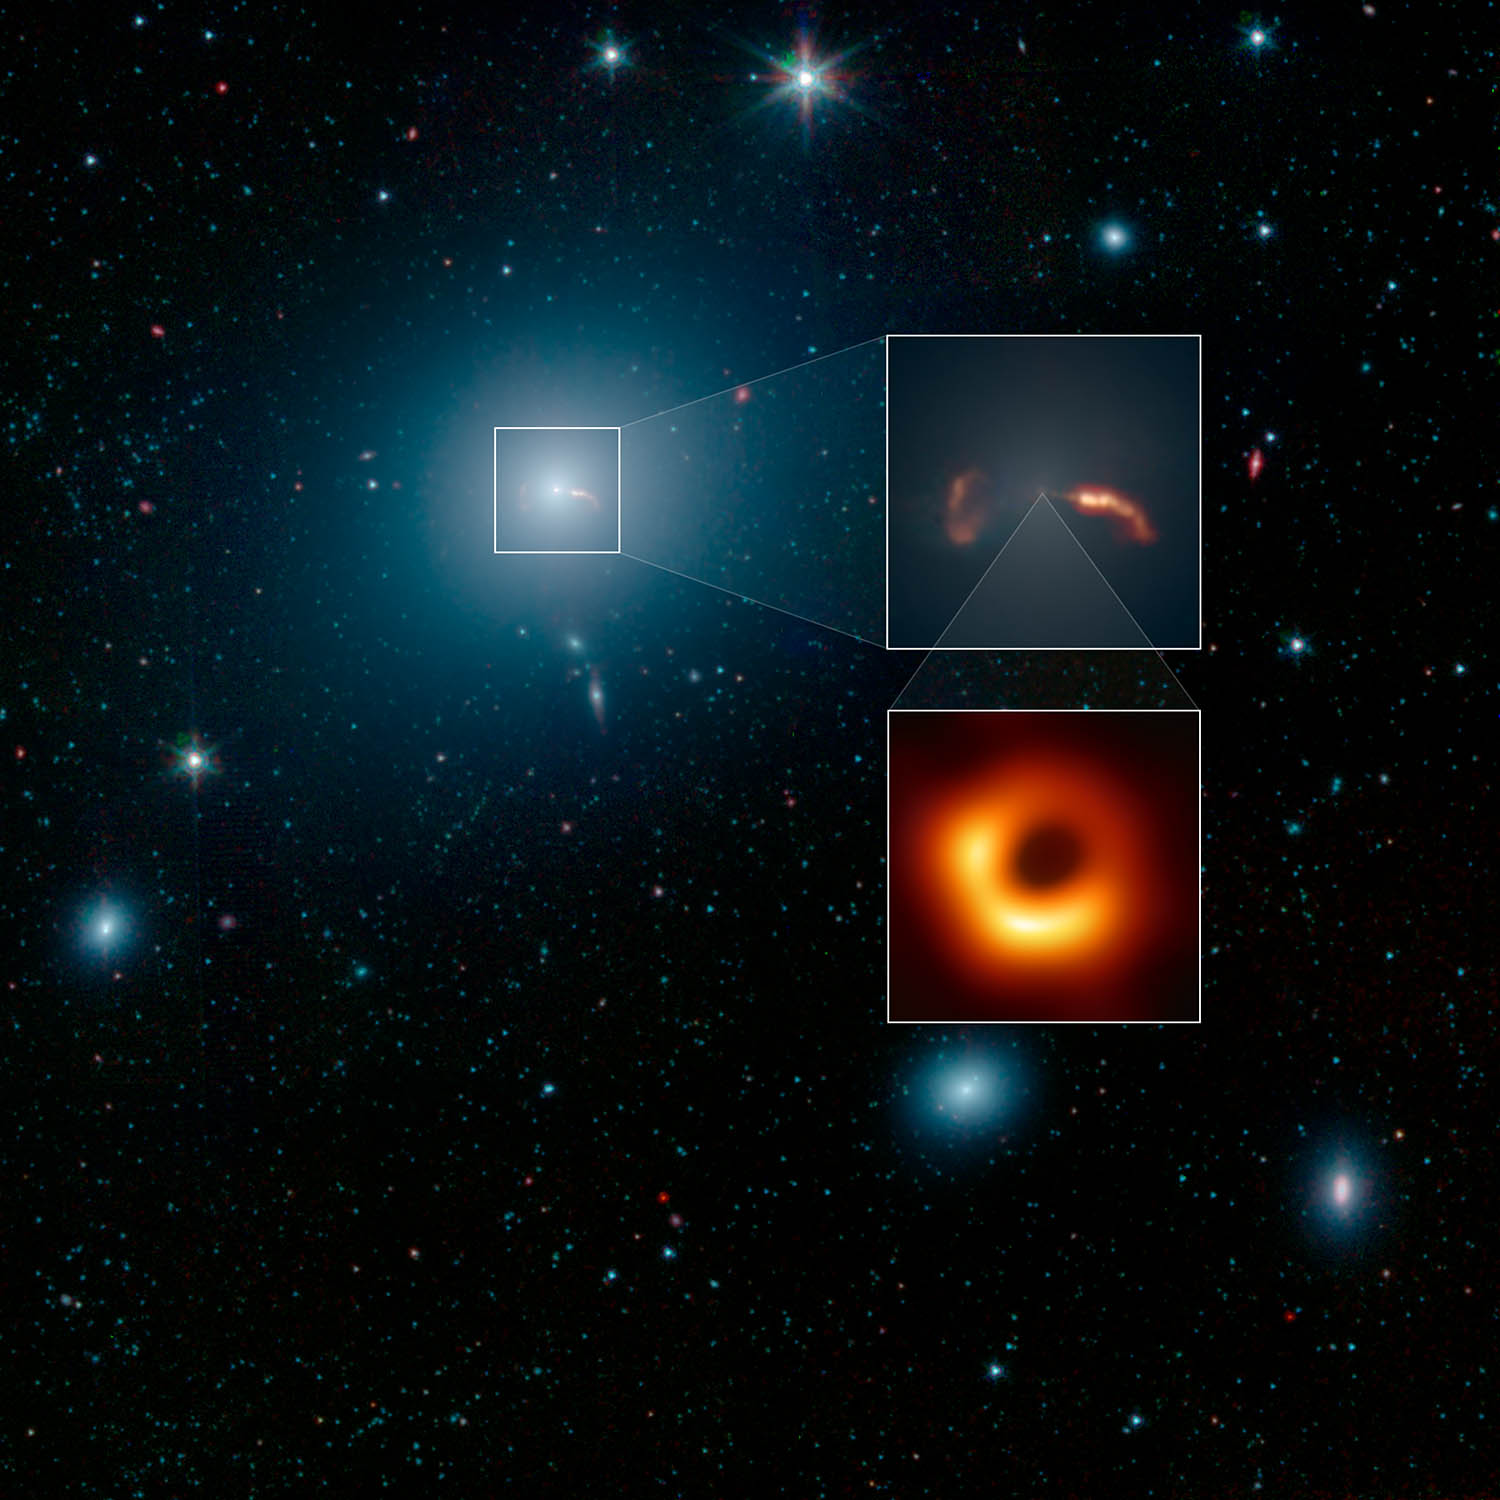 EHT: Astronomers Capture First Image of a Black Hole